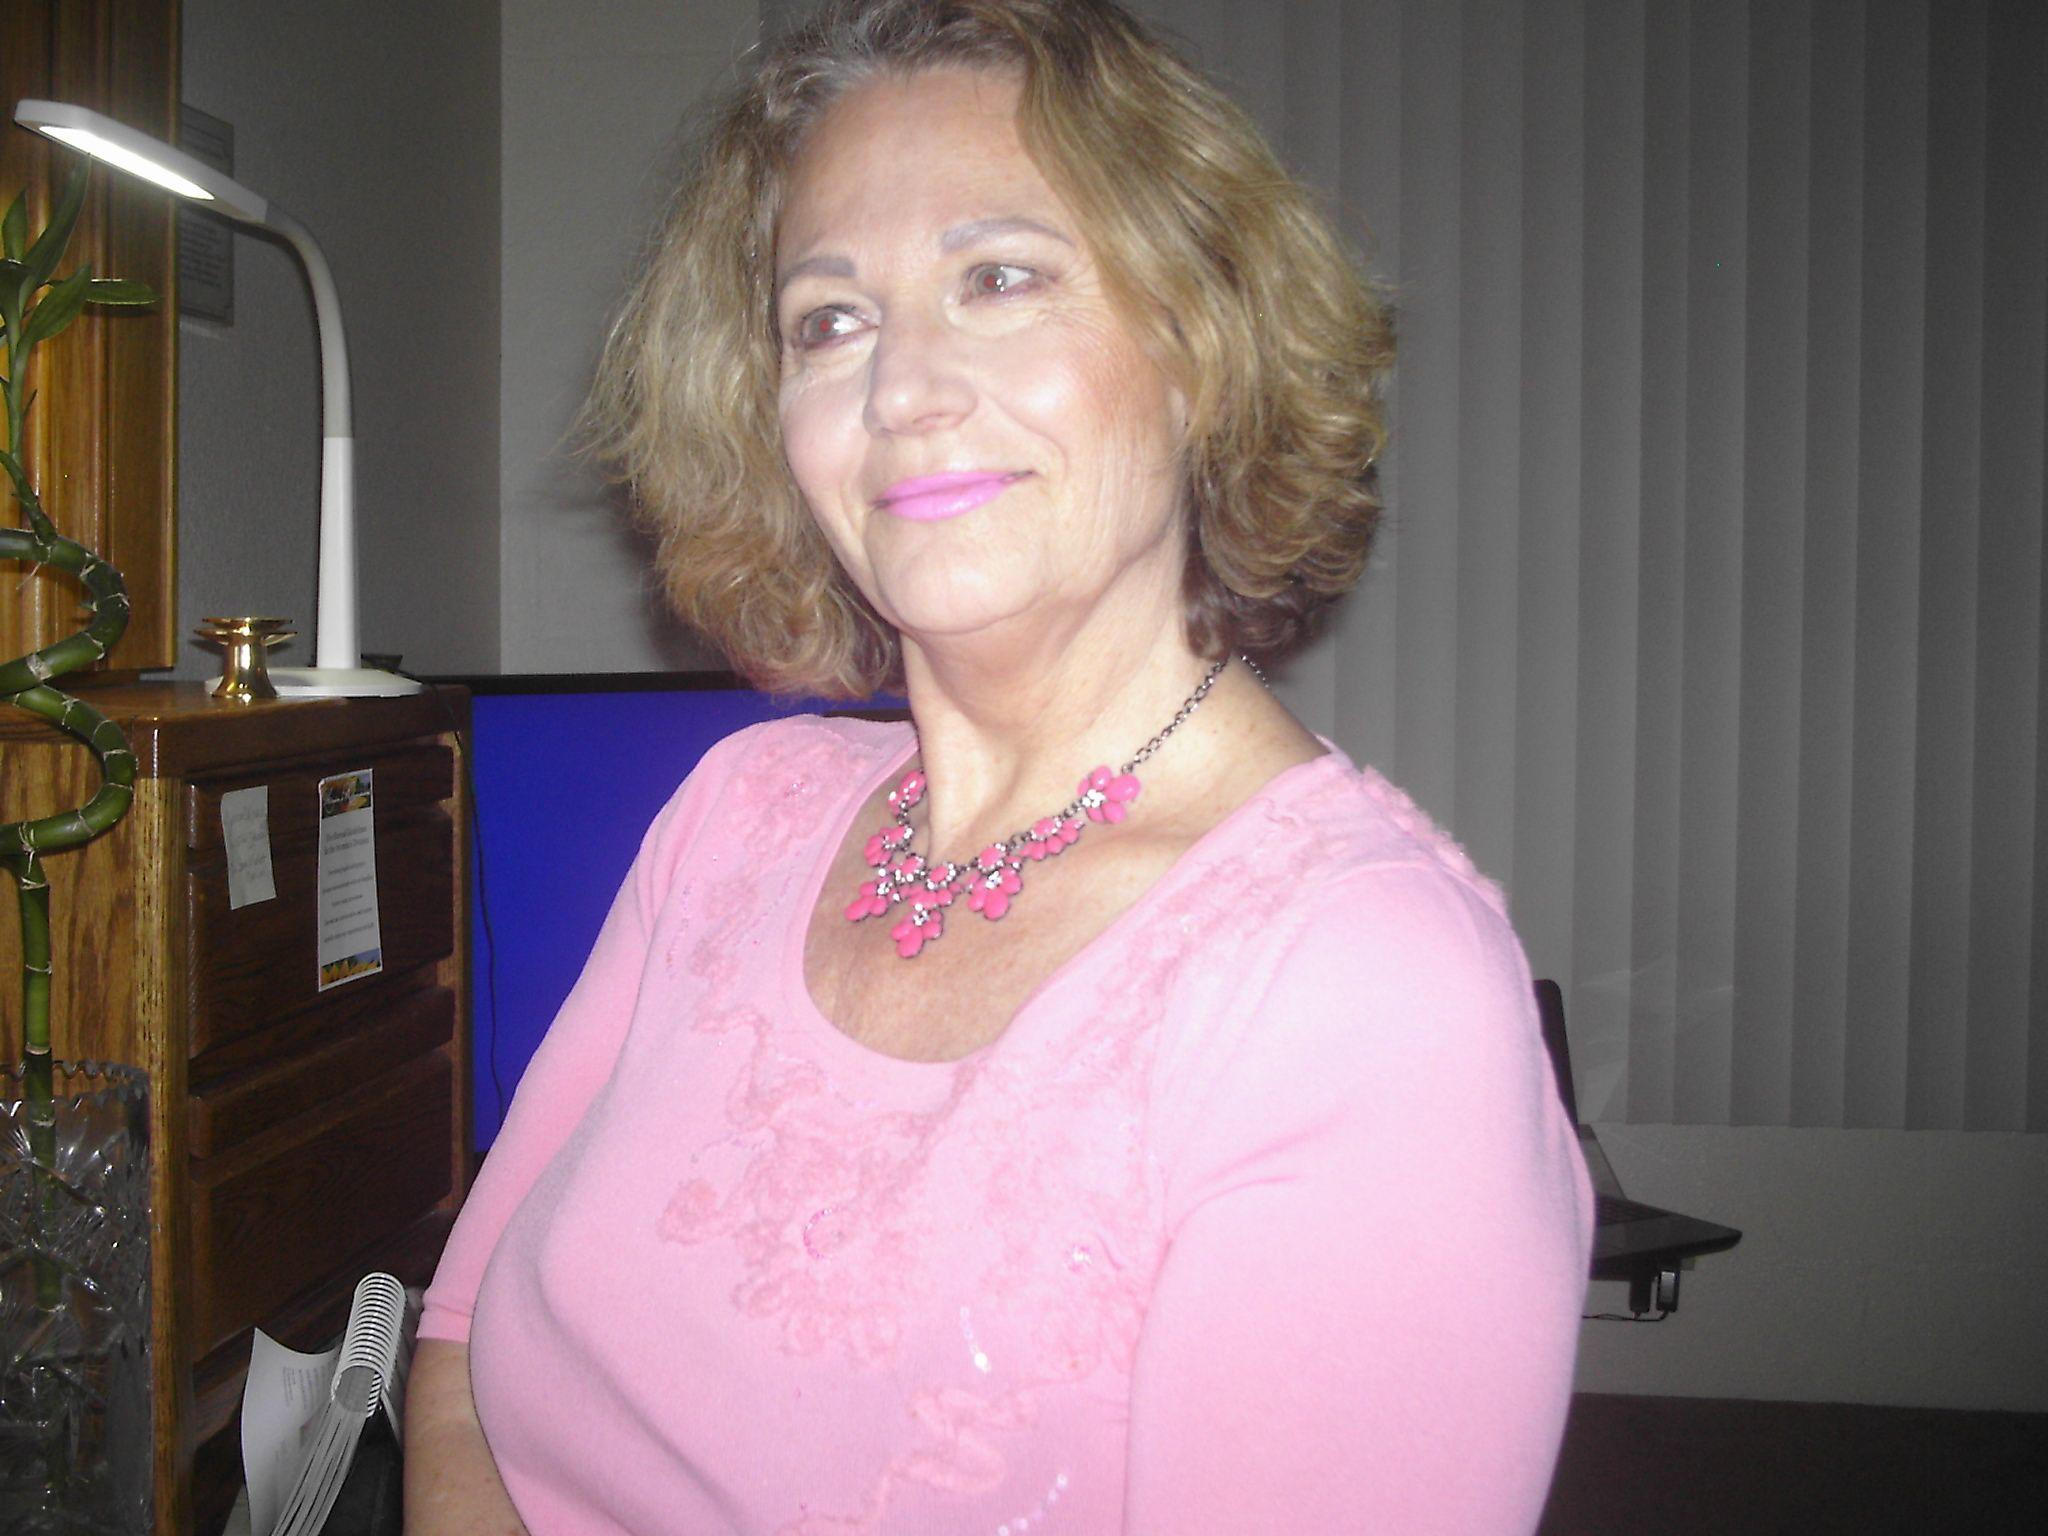 singles over 50 in palm springs Single and over 50 - what is your gender and preference.